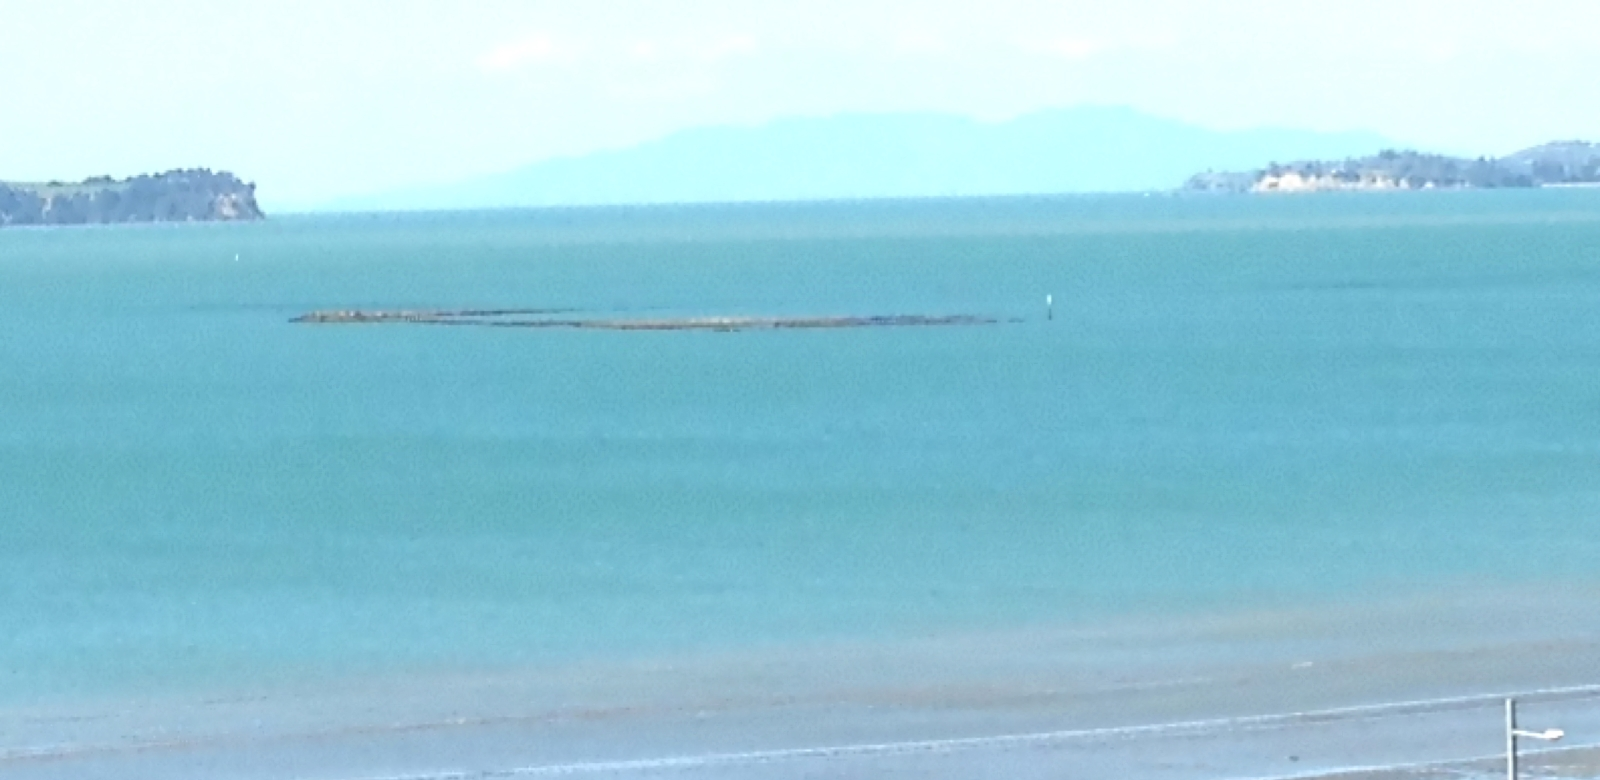 Auckland harbour - our mission brought the Society first to New Zealand, and later to Australia